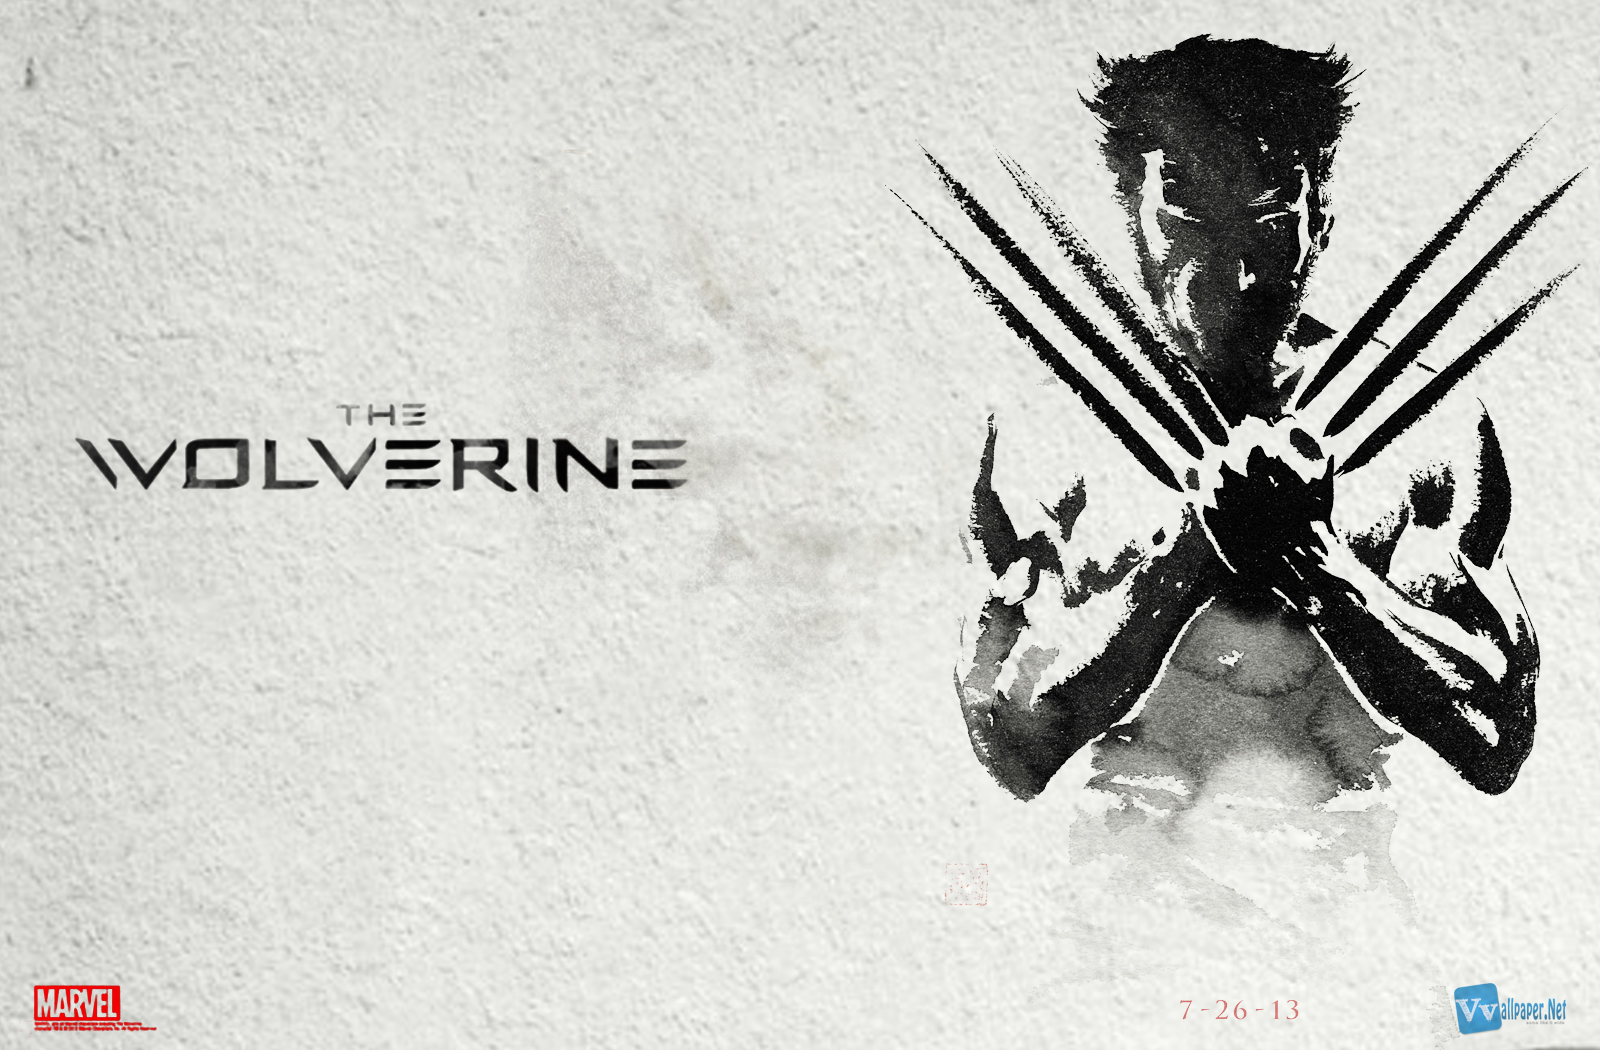 http://3.bp.blogspot.com/-nt4_rCBrmBA/UJjAY_D0KCI/AAAAAAAAF3E/seYxgfNH-fg/s1600/Marvel-The-Wolverine-Movie-2013-HD-Wallpaper_Vvallpaper.Net.jpg